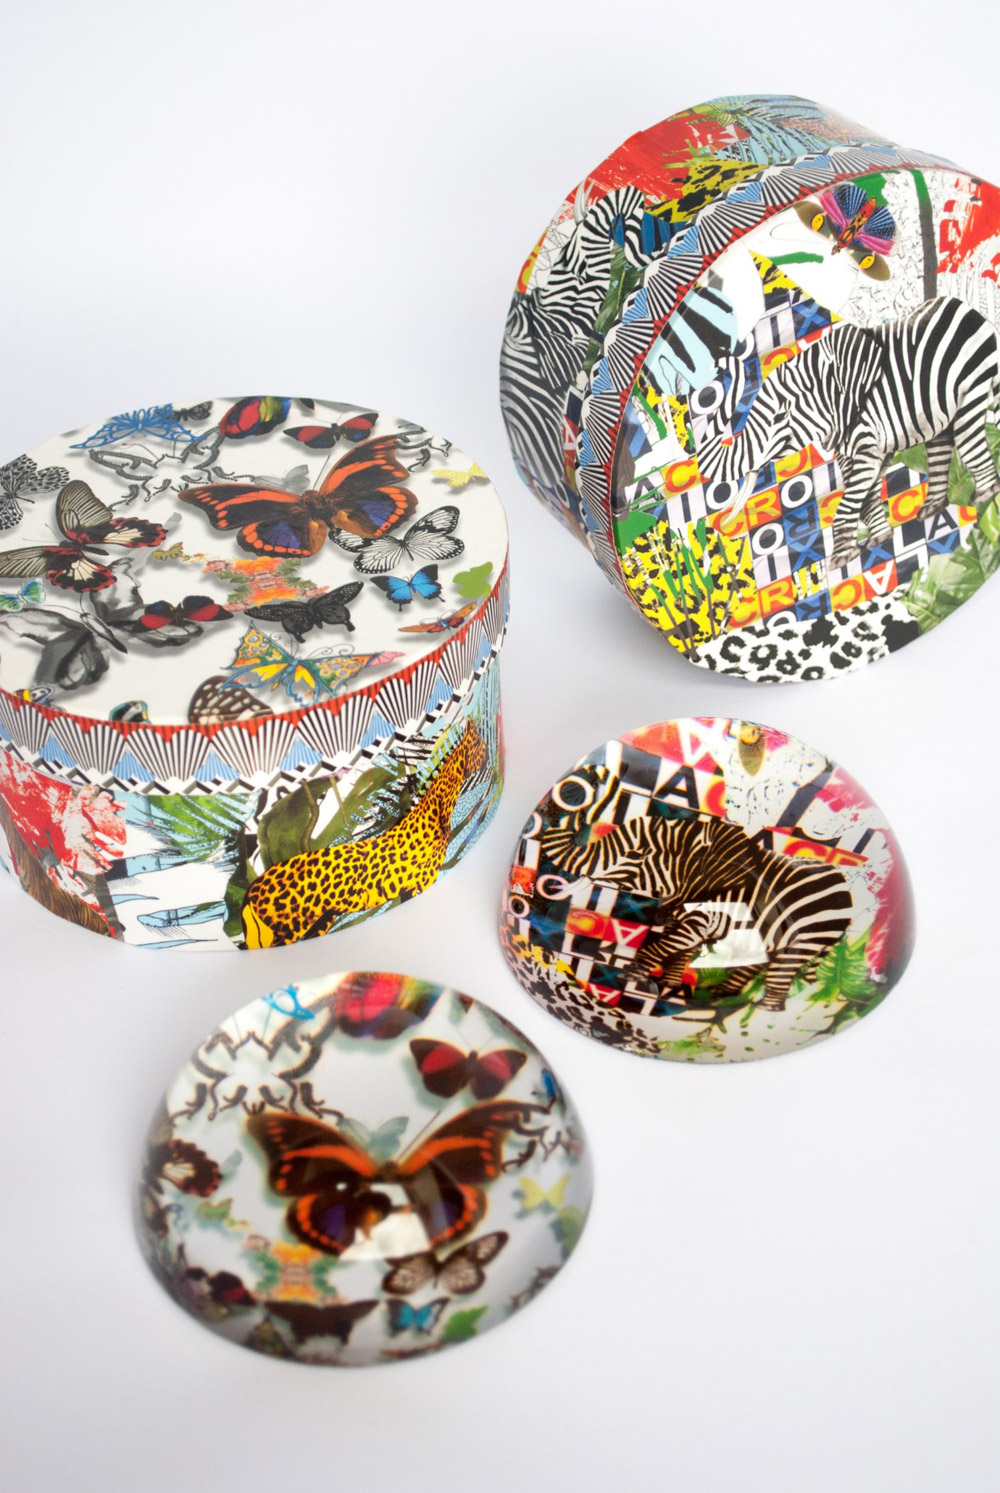 Jenny Blanc Blog - Paperweights with Matching Gift Boxes